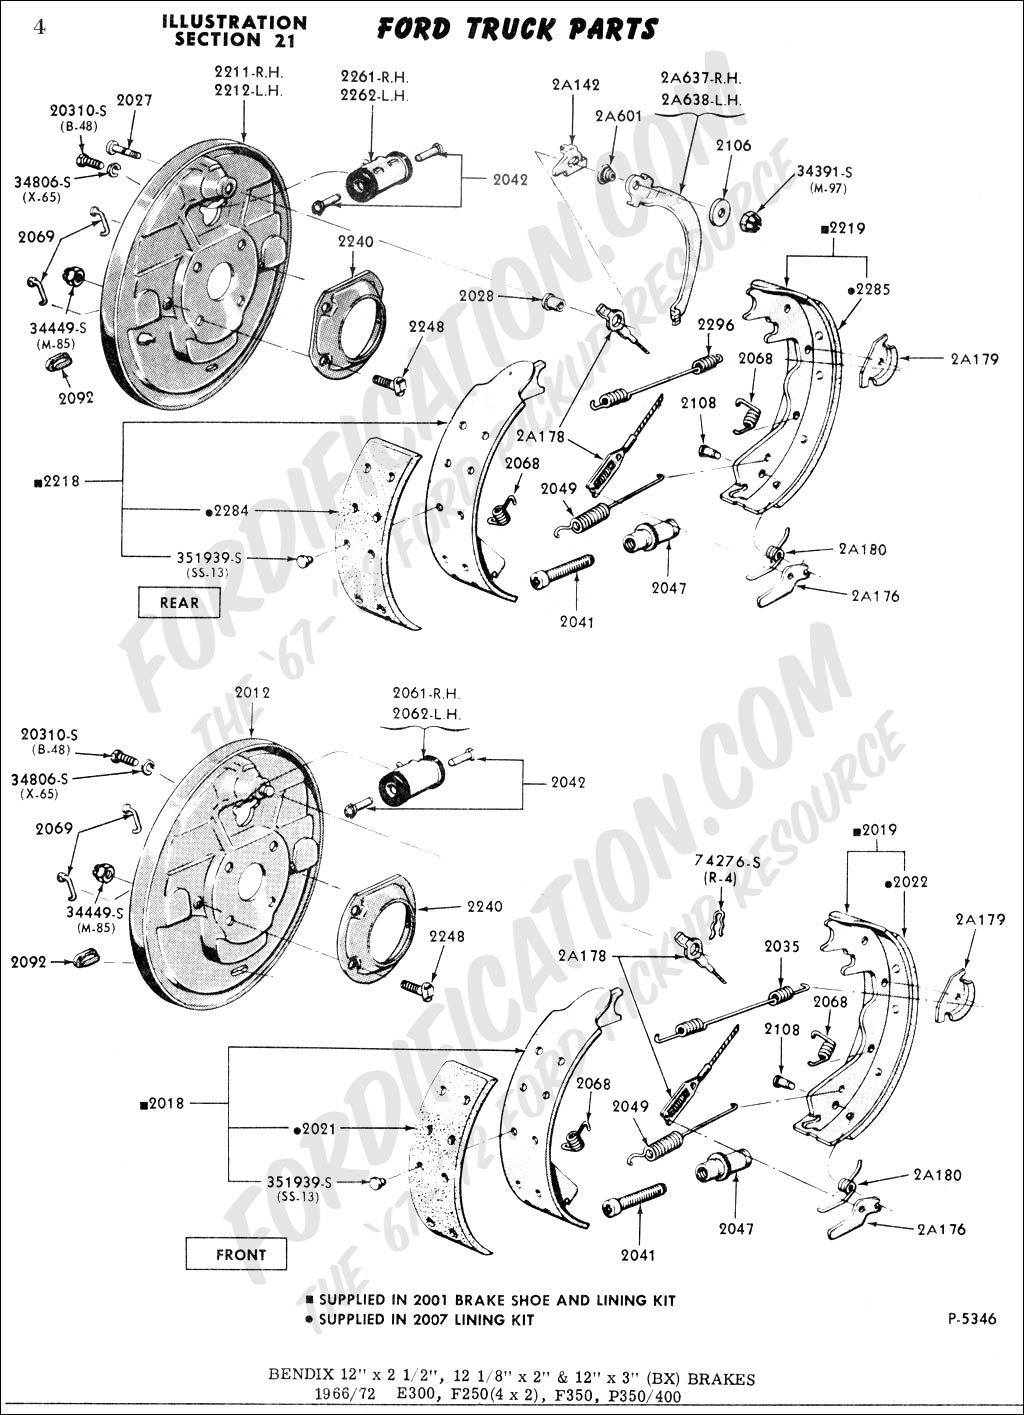 brakes01 ford truck technical drawings and schematics section b brake Ford Super Duty Wiring Diagram at panicattacktreatment.co